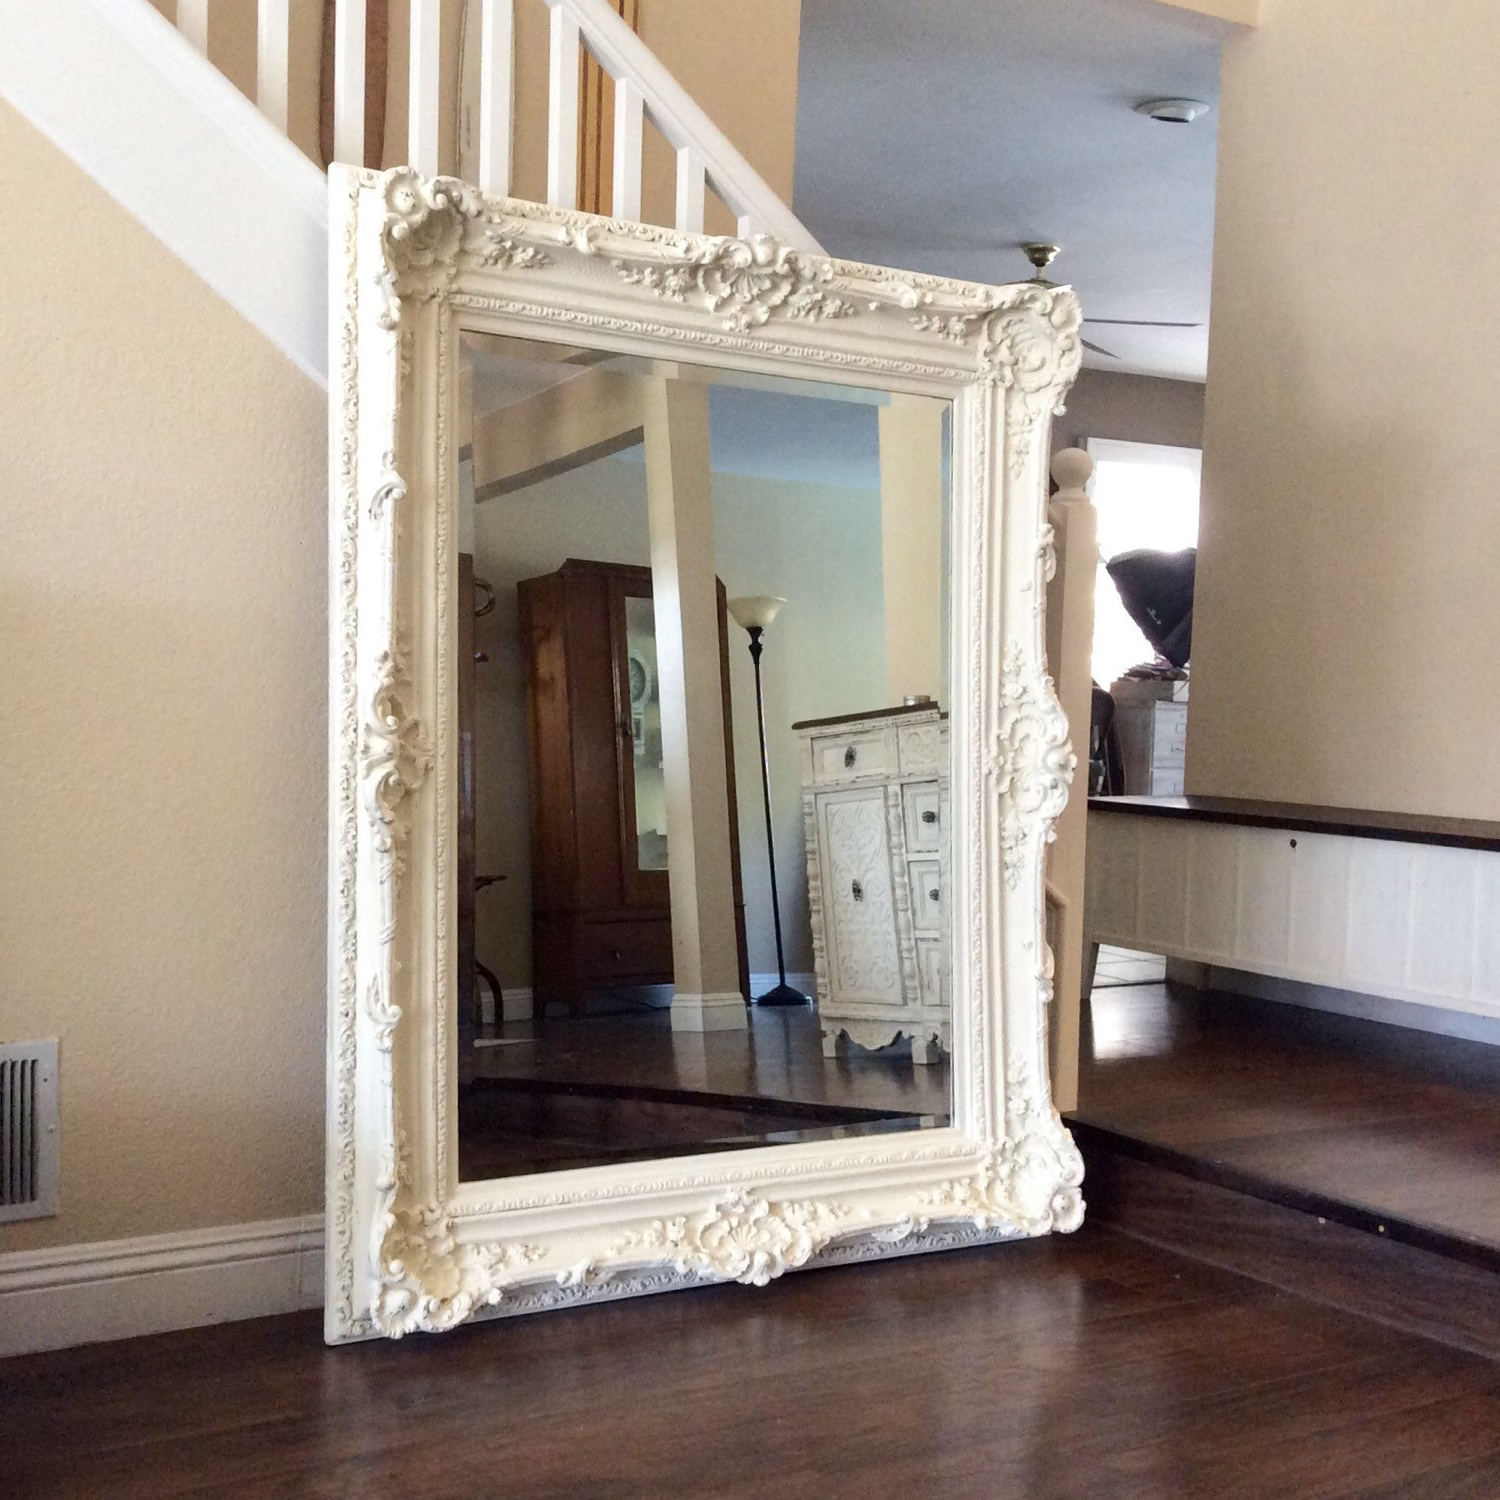 Latest White Decorative Wall Mirrors Pertaining To Classy Design Shabby Chic Wall Mirror Plus Belgravia White (View 17 of 20)